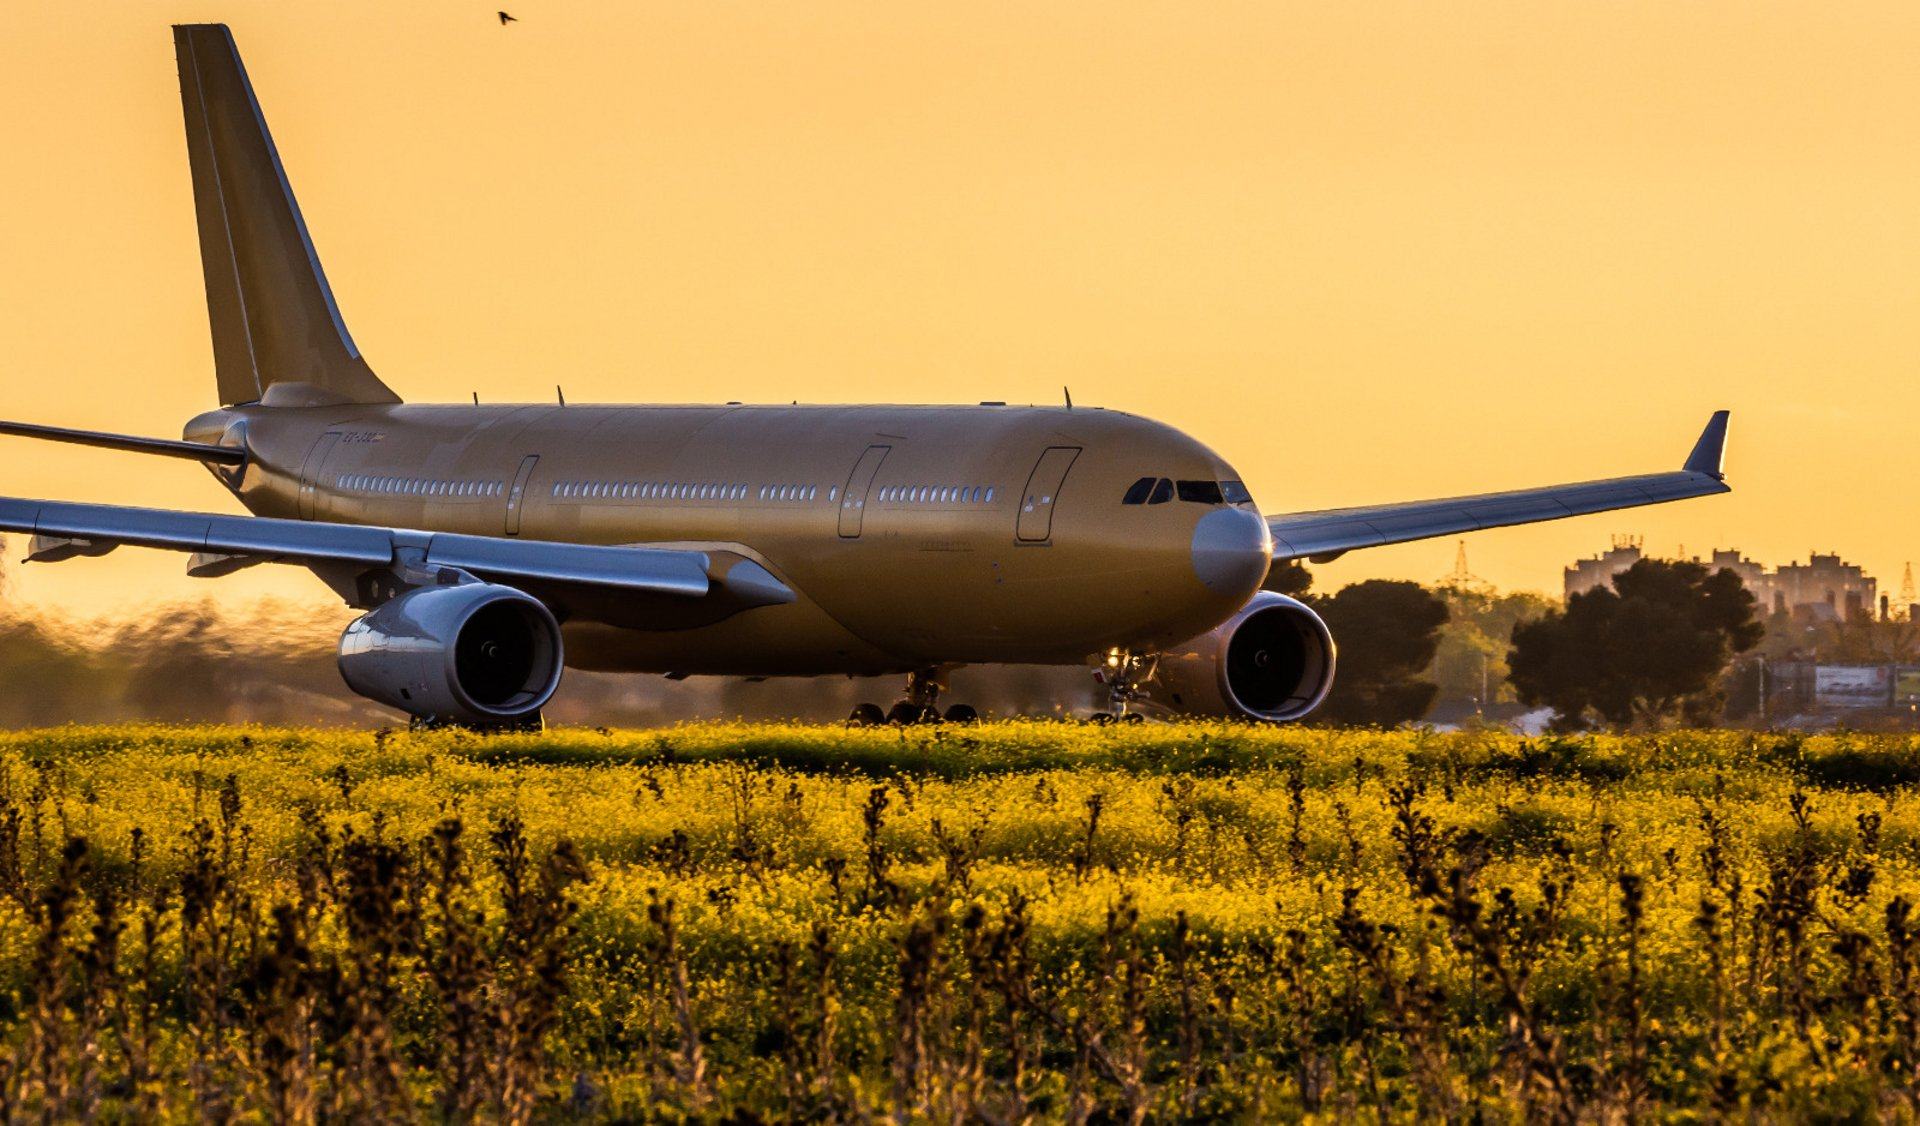 An A330MRTT taking off from the AIrbus Getafe site enroute to China.